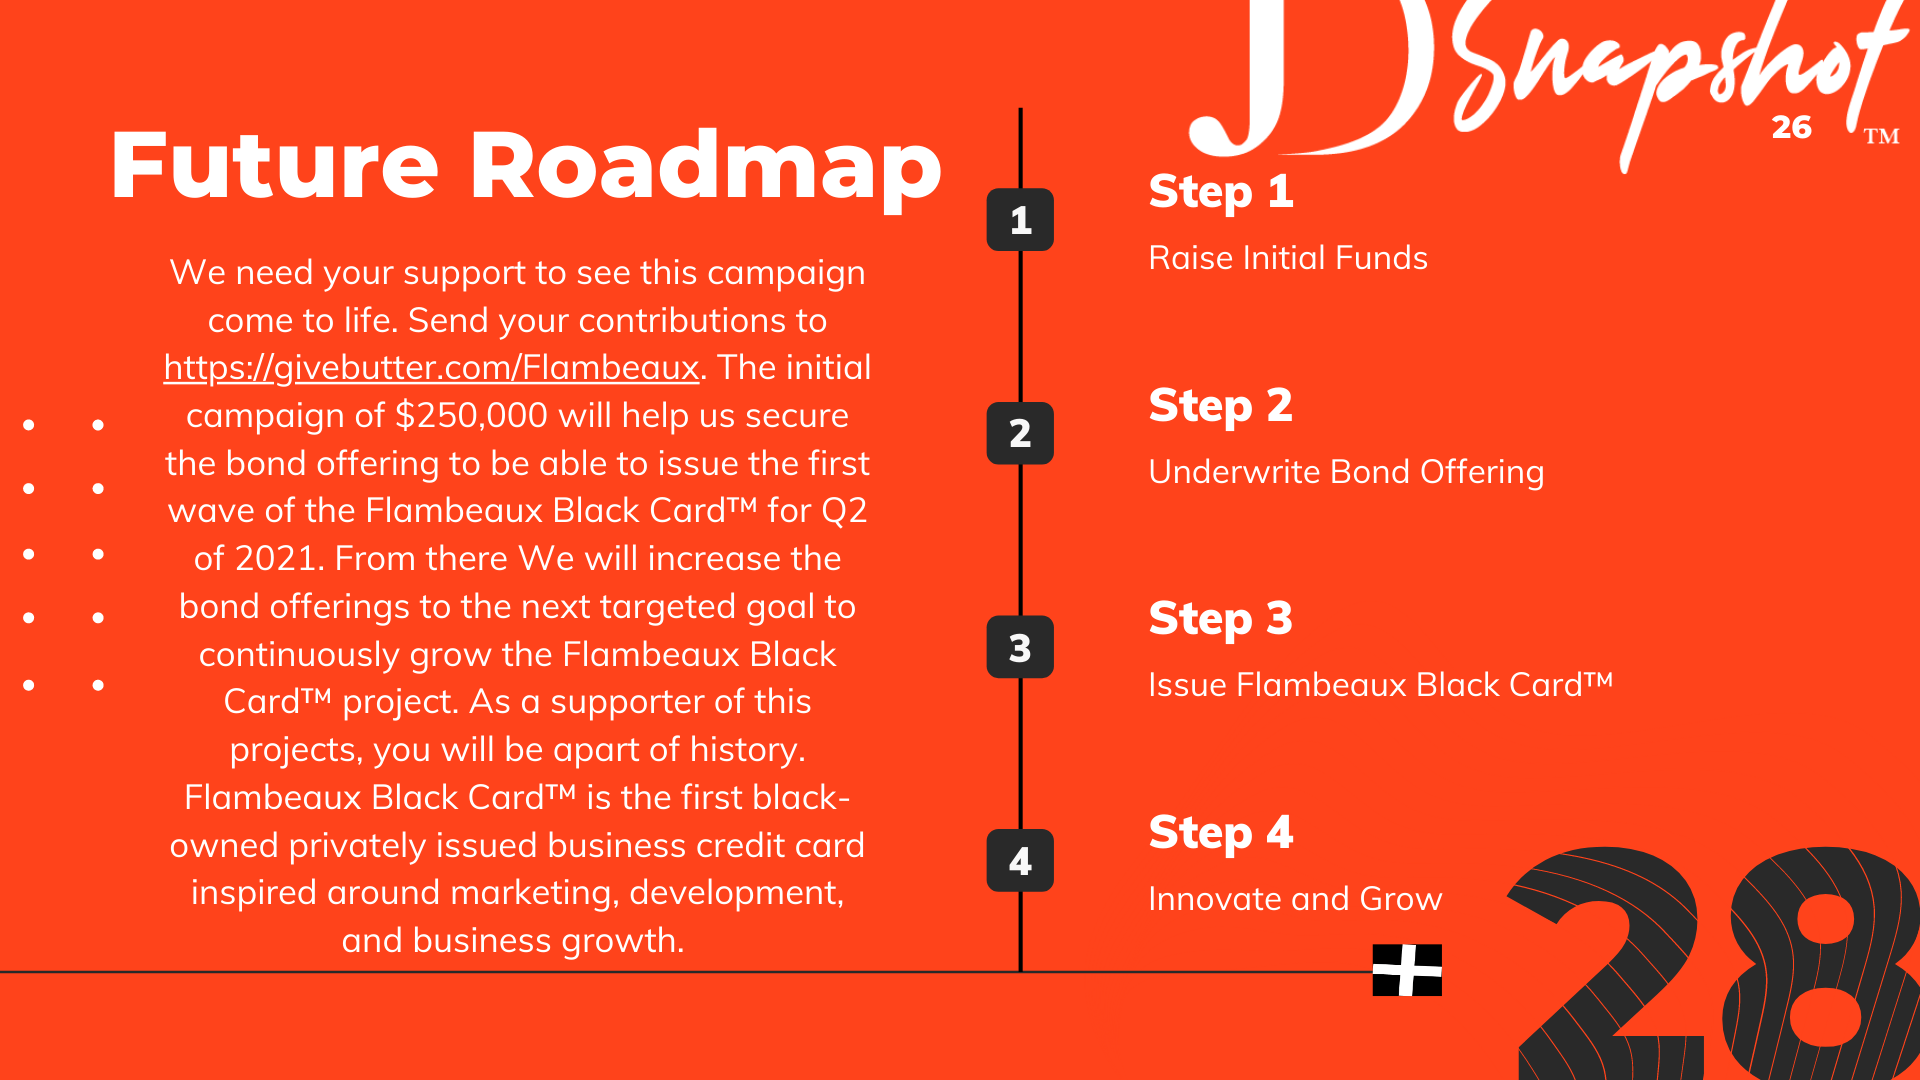 Future Roadmap | We need your support to see this campaign come to life. Send your contributions to https://givebutter.com/Flambeaux. The initial campaign of $250,000 will help us secure the bond offering to be able to issue the first wave of the Flambeaux Black Card™ for Q2 of 2021. From there We will increase the bond offerings to the next targeted goal to continuously grow the Flambeaux Black Card™ project. As a supporter of this projects, you will be apart of history. Flambeaux Black Card™ is the first black-owned privately issued business credit card inspired around marketing, development, and business growth. | Step 1 - Raise Initial Funds | Step 2 - Underwrite Bond Offering | Step 3 - Issue Flambeaux Black Card™ | Step 4 - Innovate and Grow